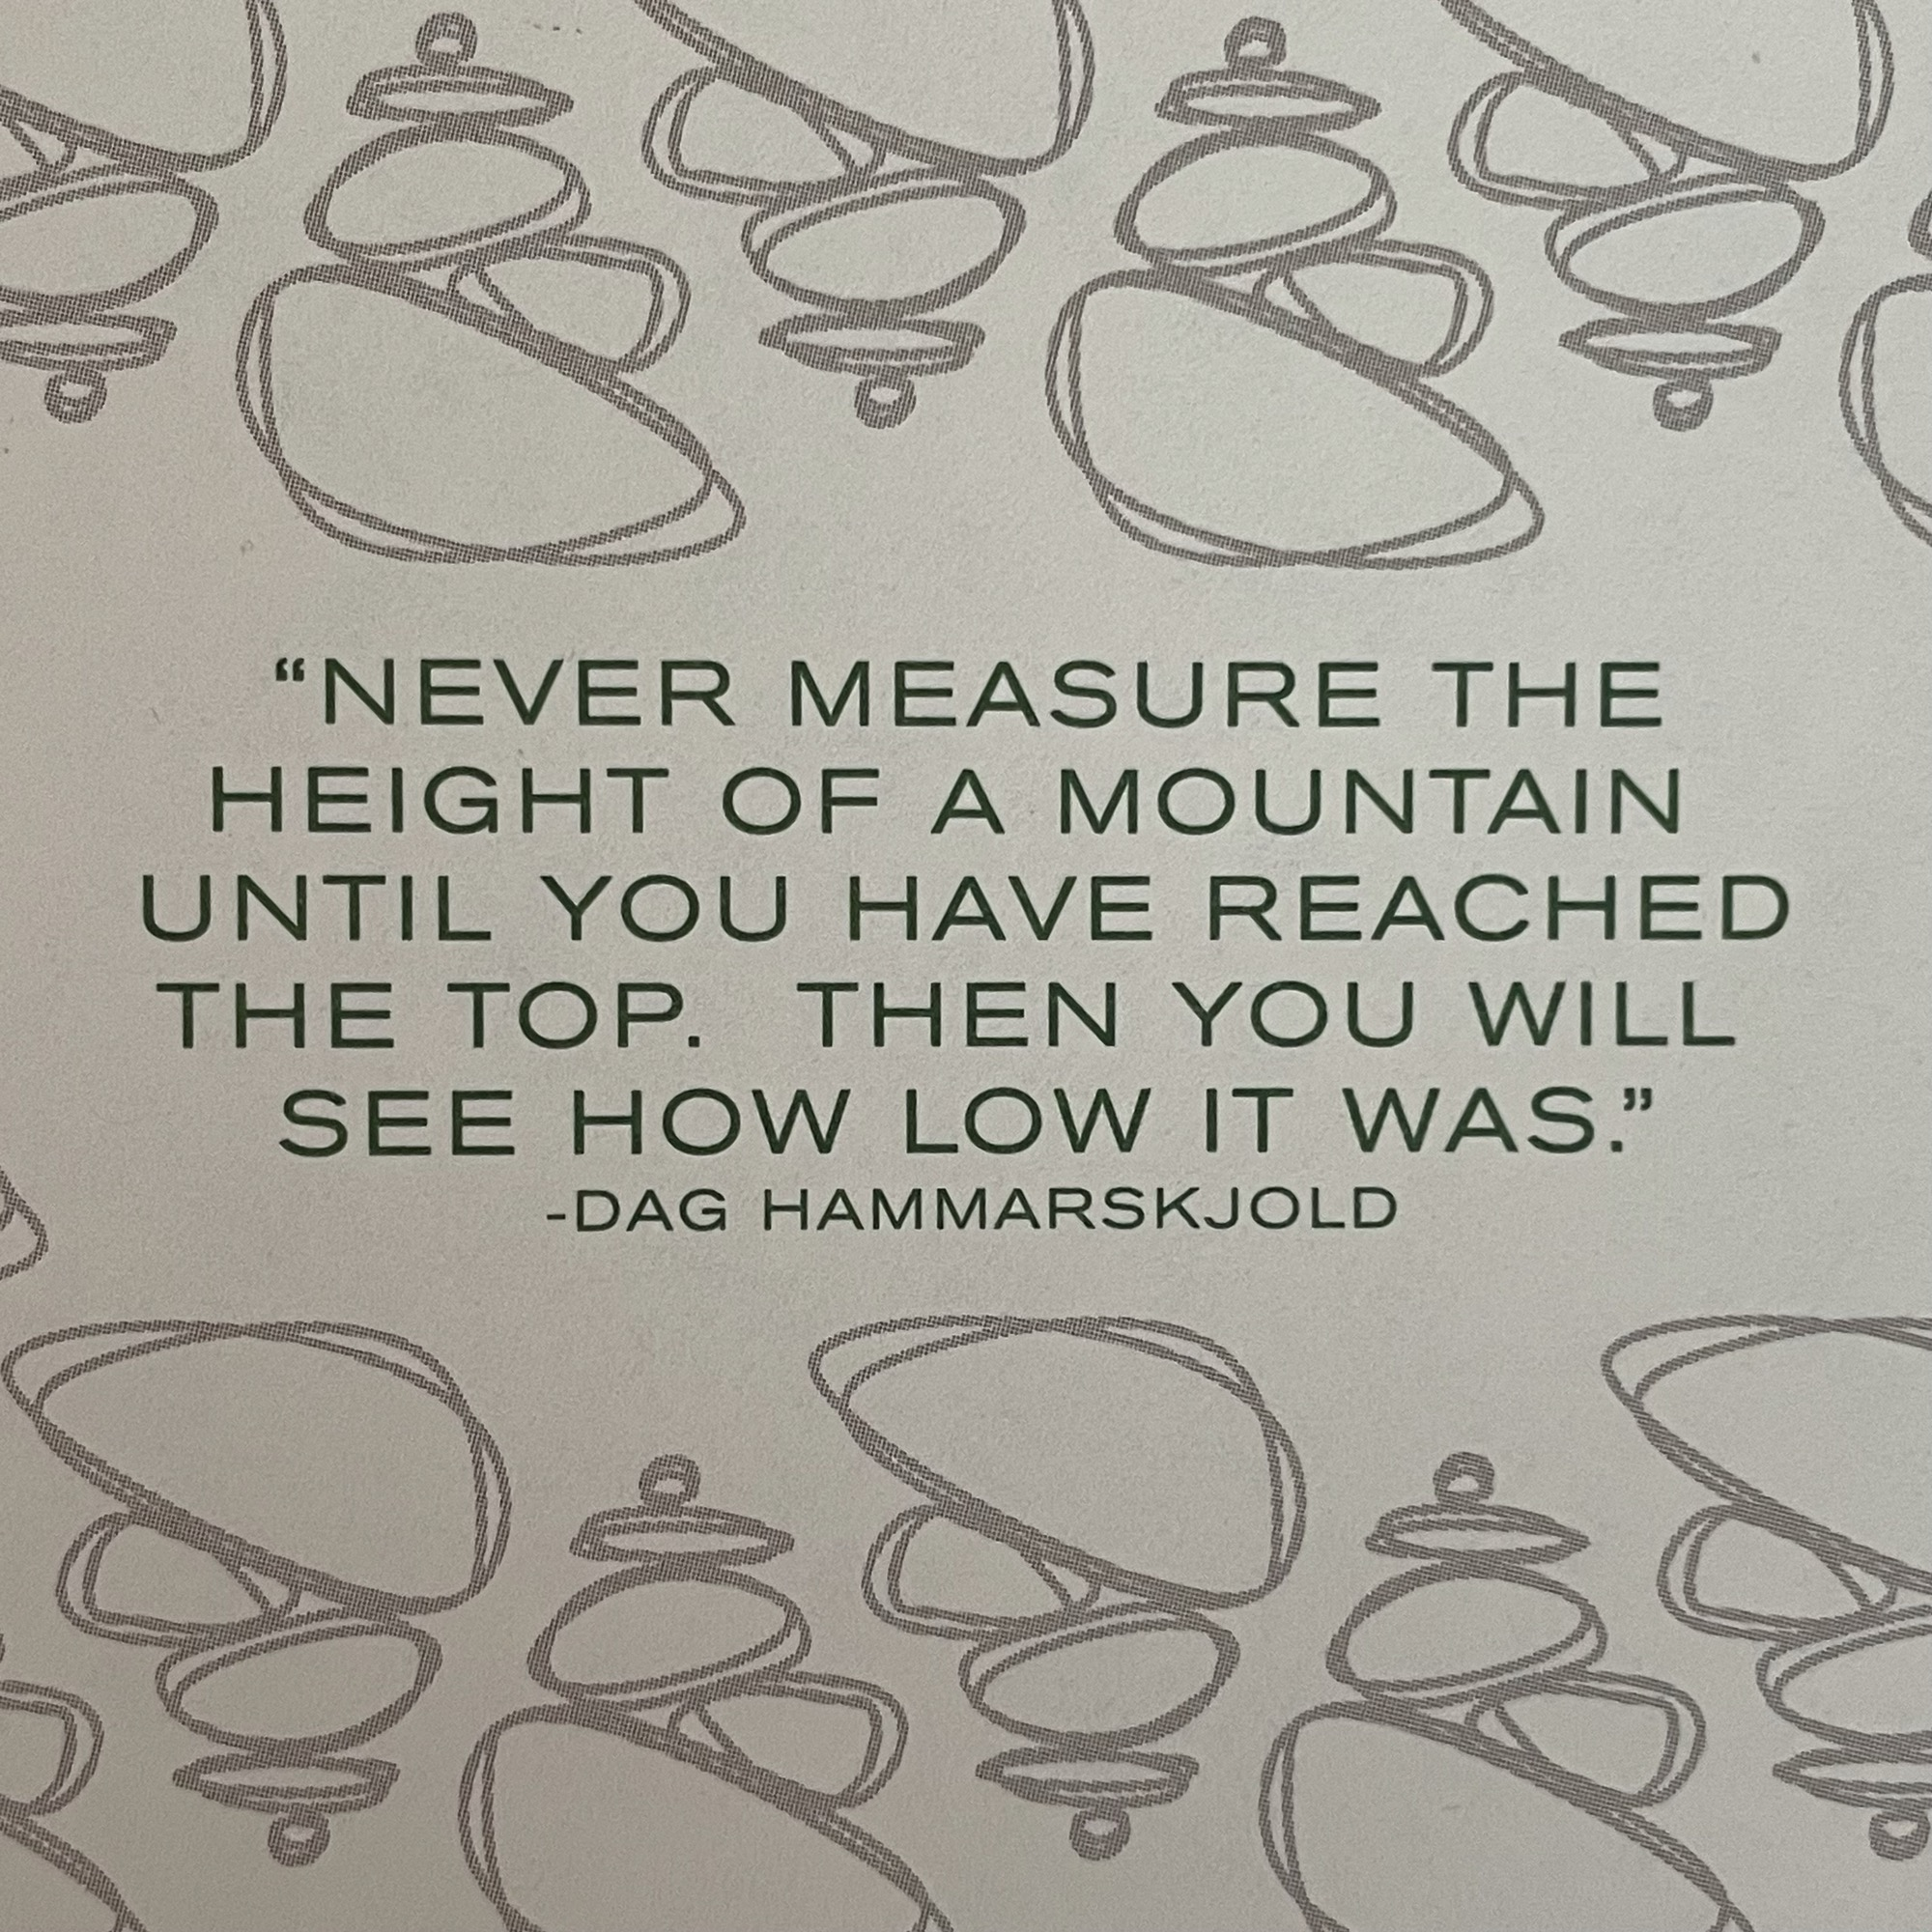 [Image] Never measure the height of a mountain until you have reached the top. Then you will see how low it was